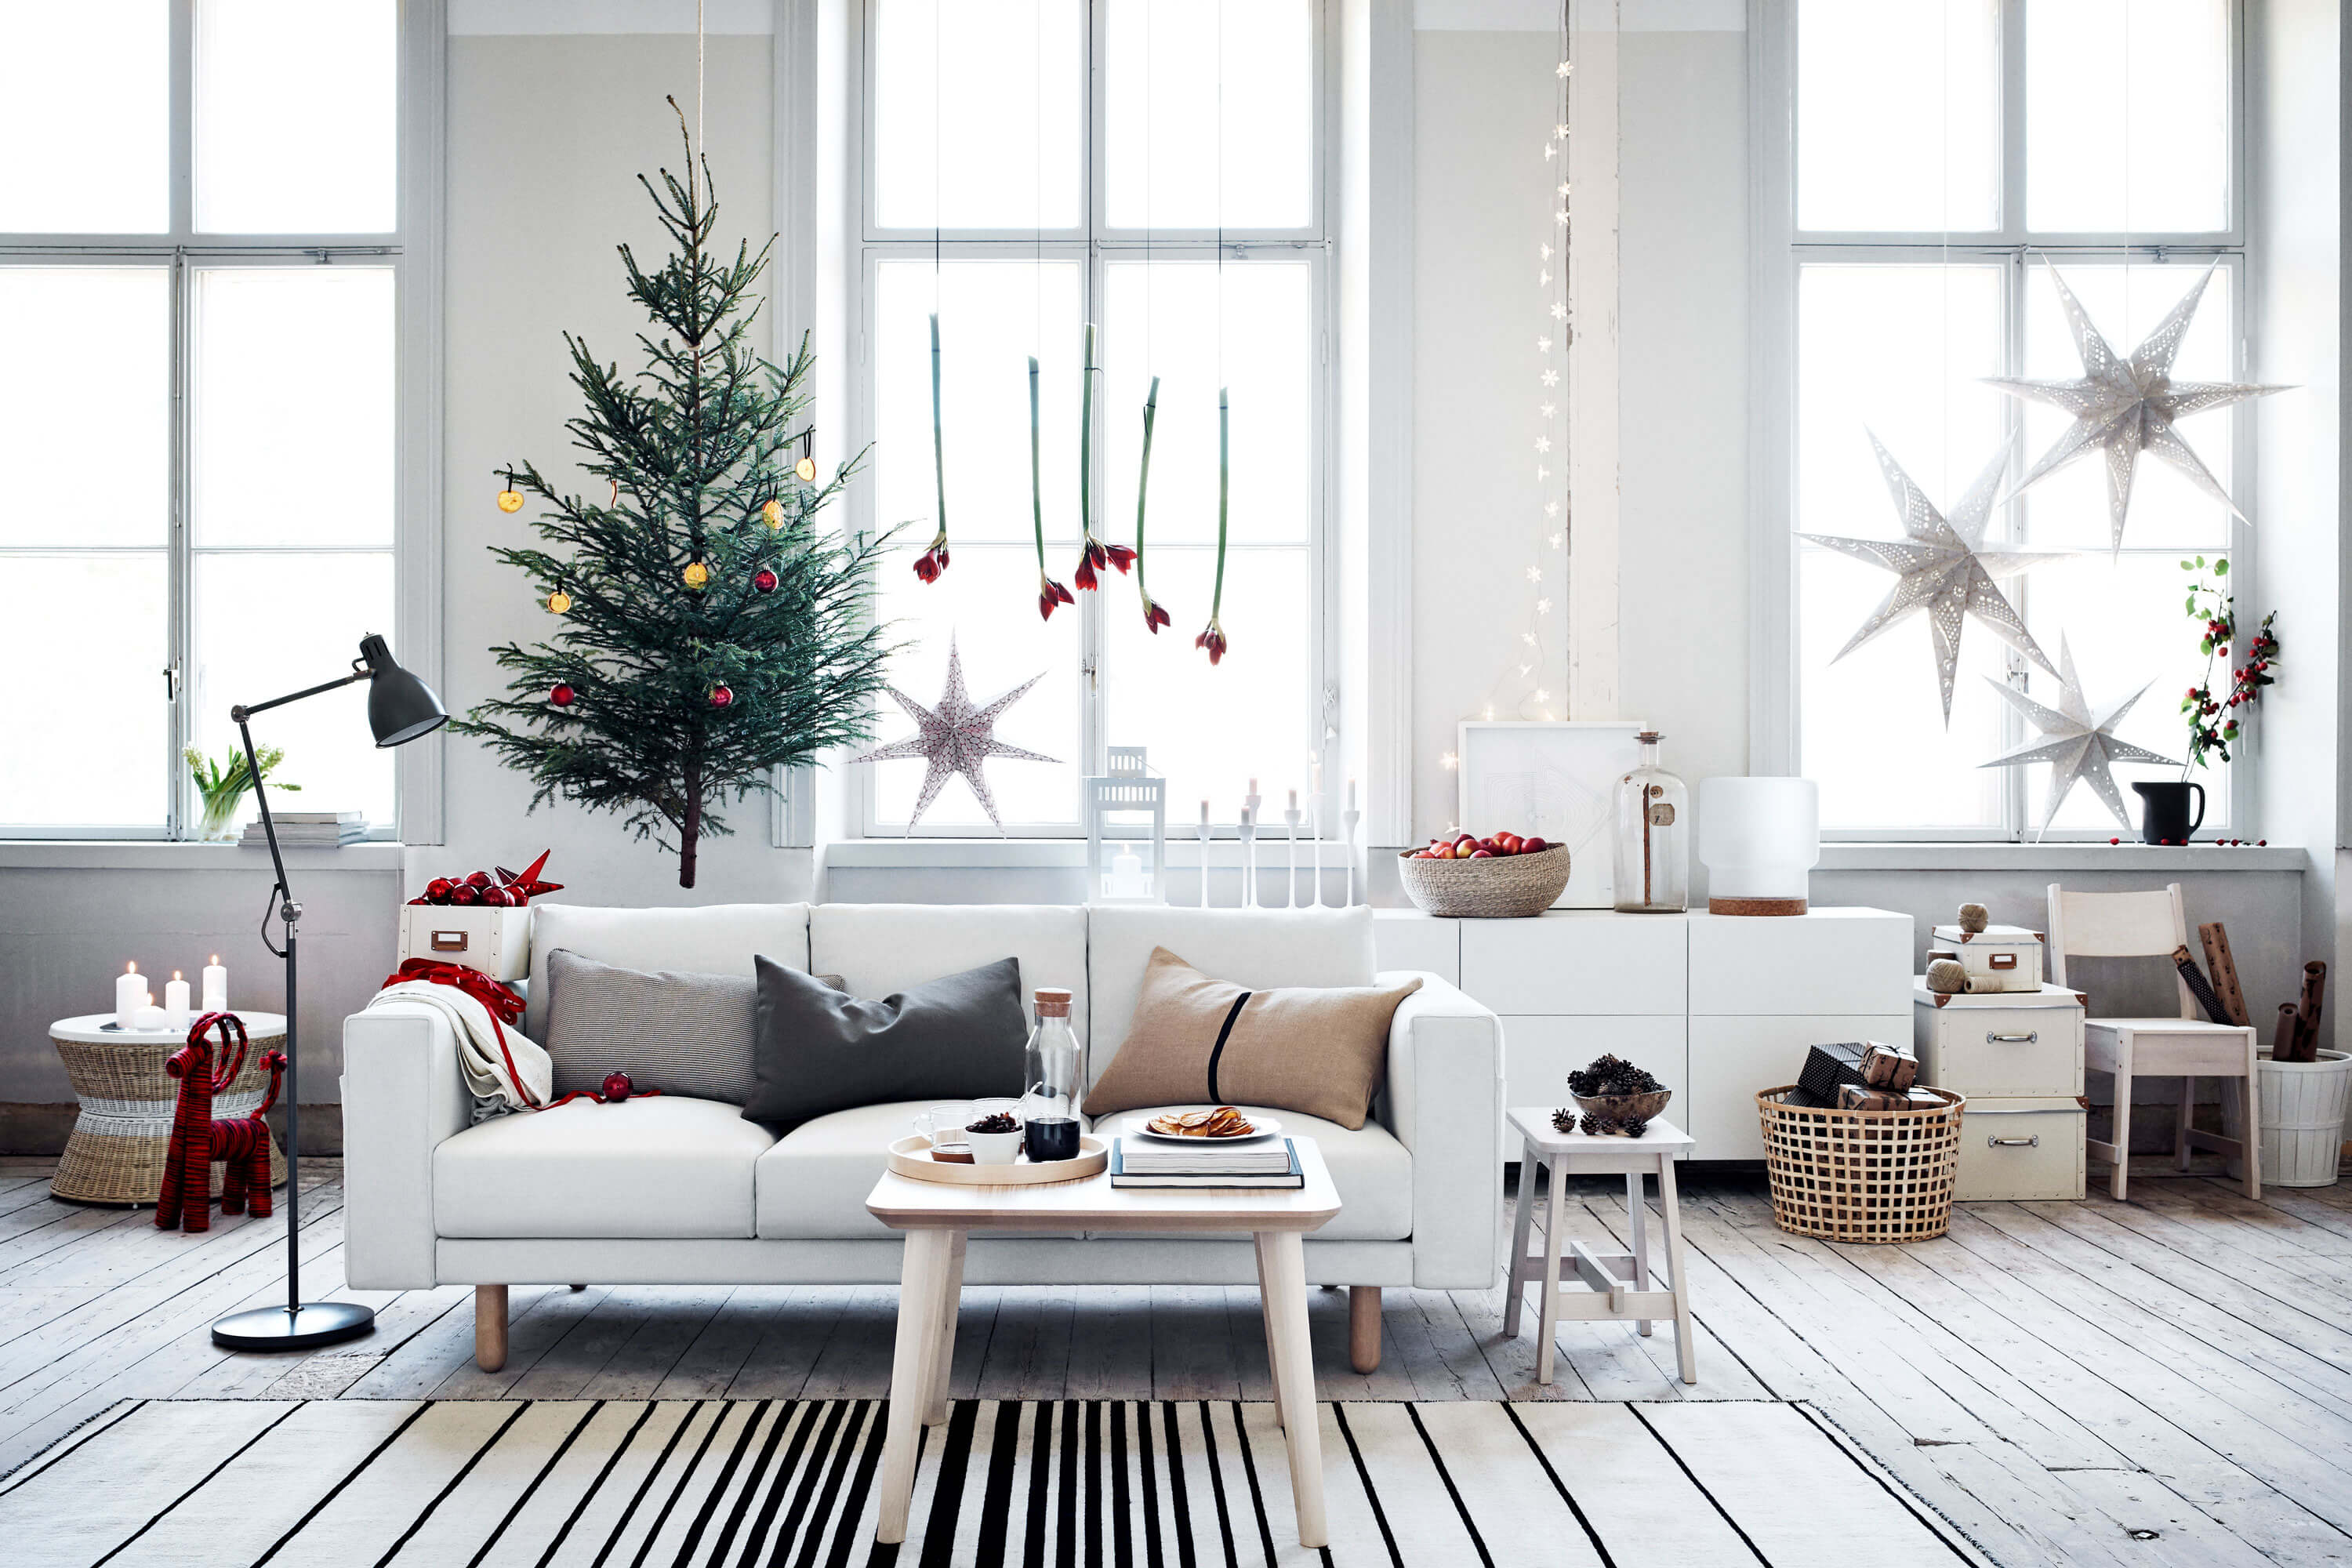 Ikea Holiday – Mikkel Vang